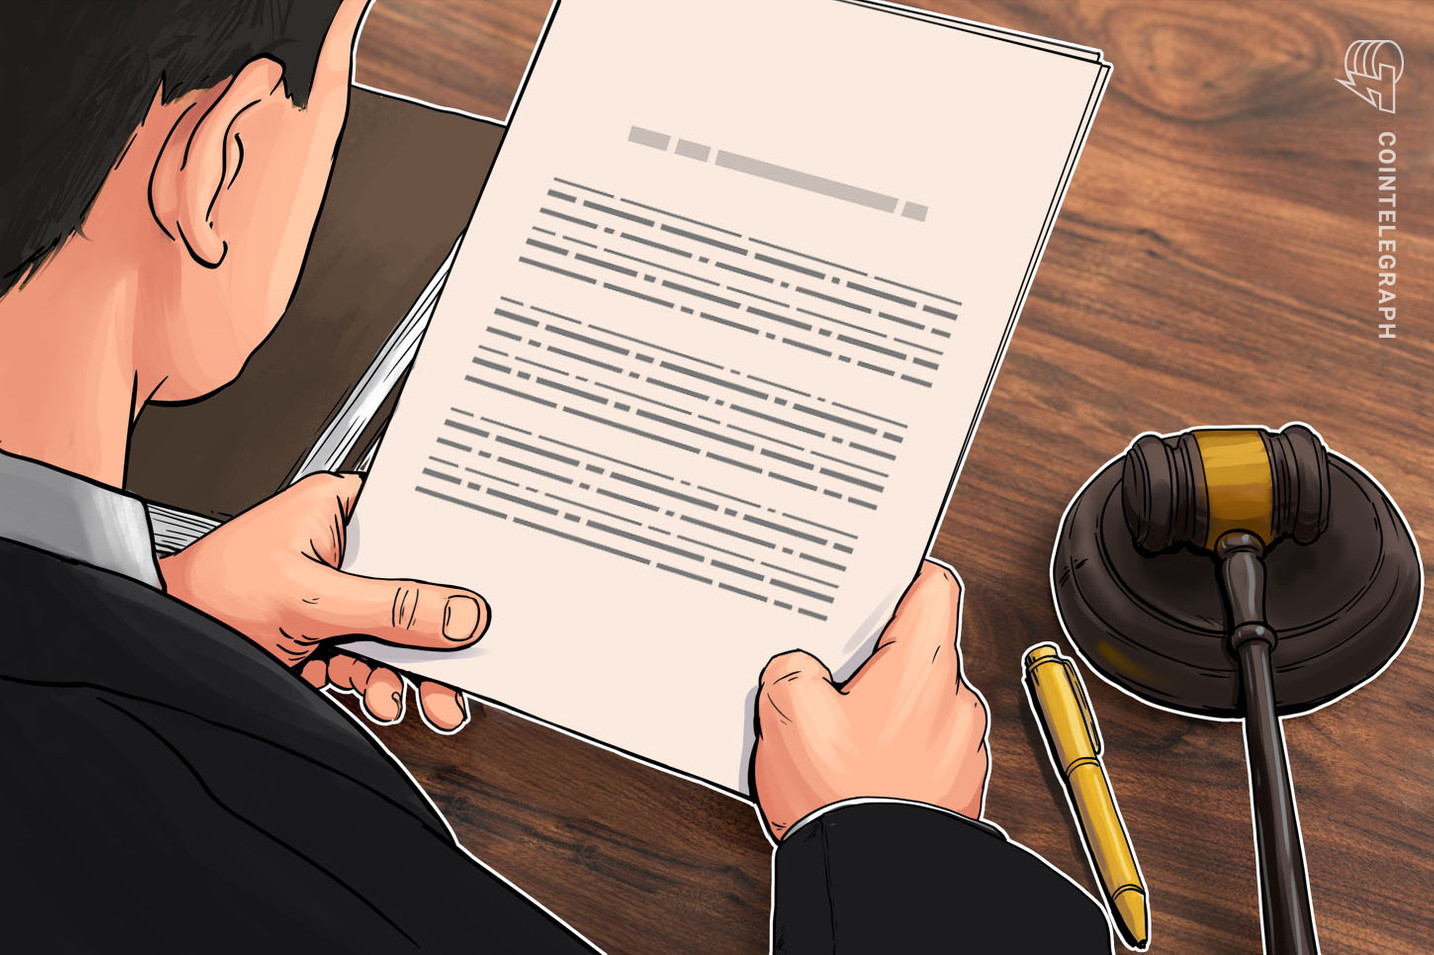 Bitmain Investors Could File a Class Action Lawsuit Against Company, Says Critic